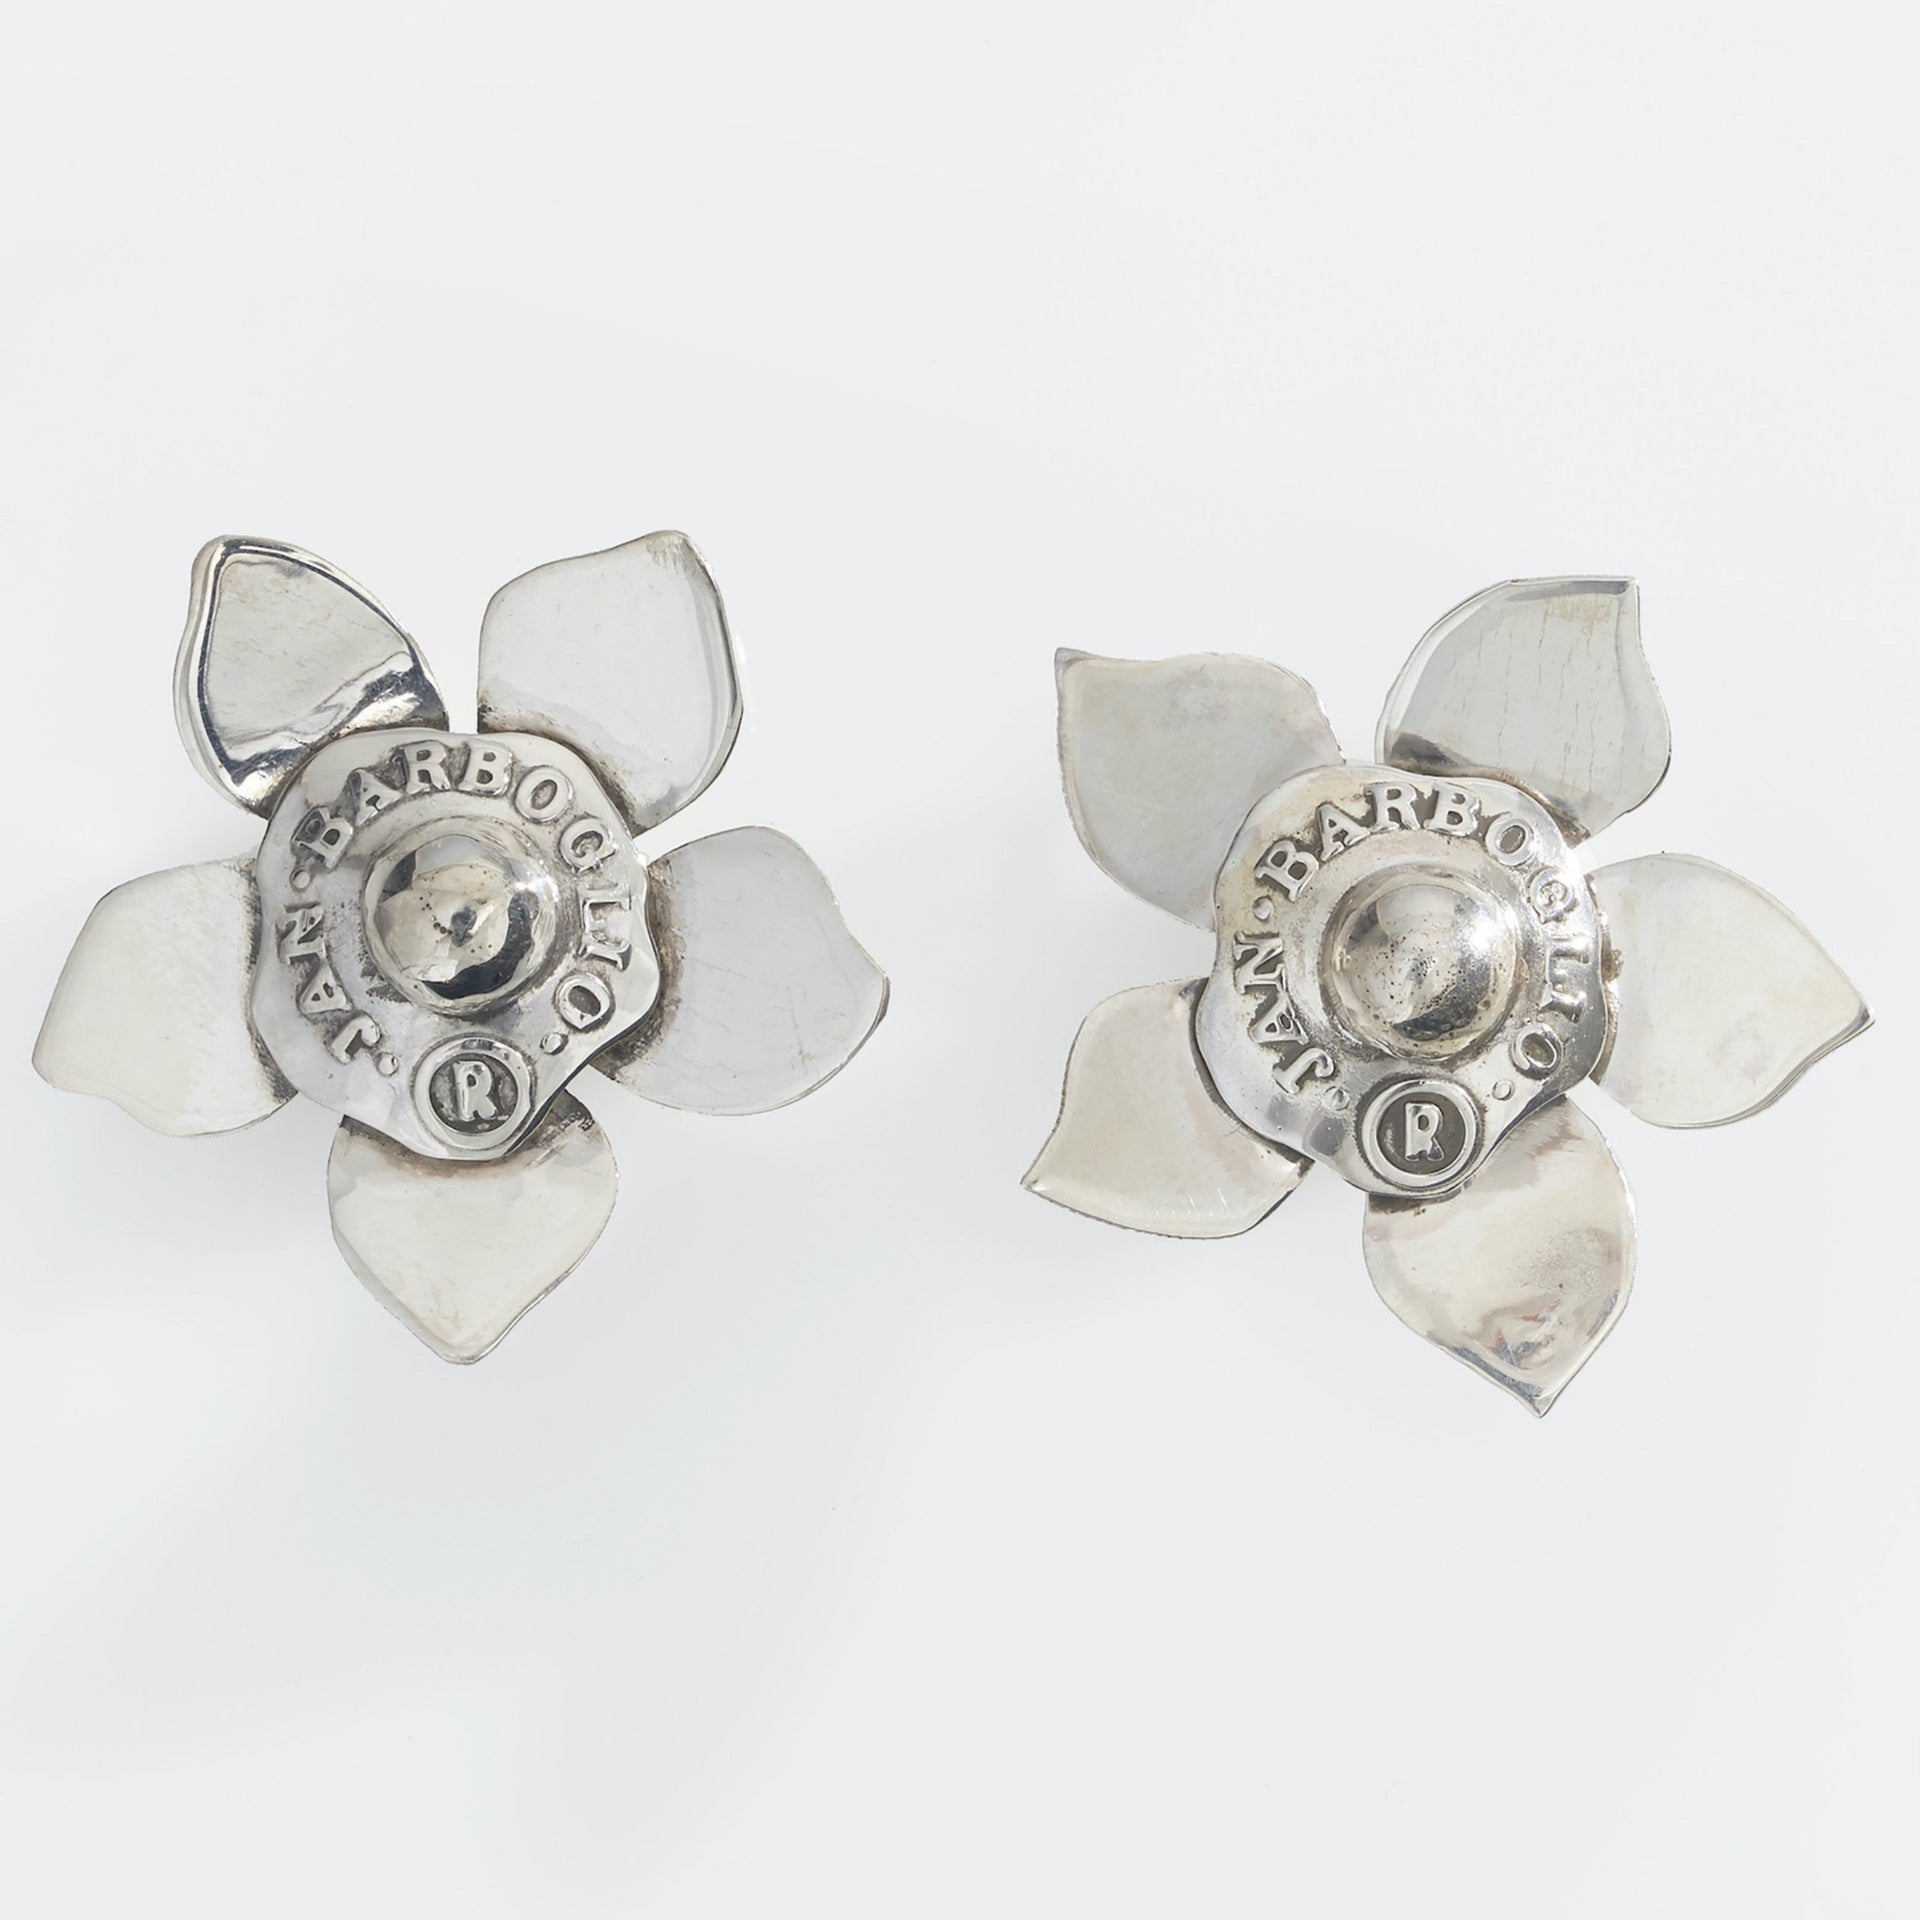 Flor Sello Earrings, Sterling